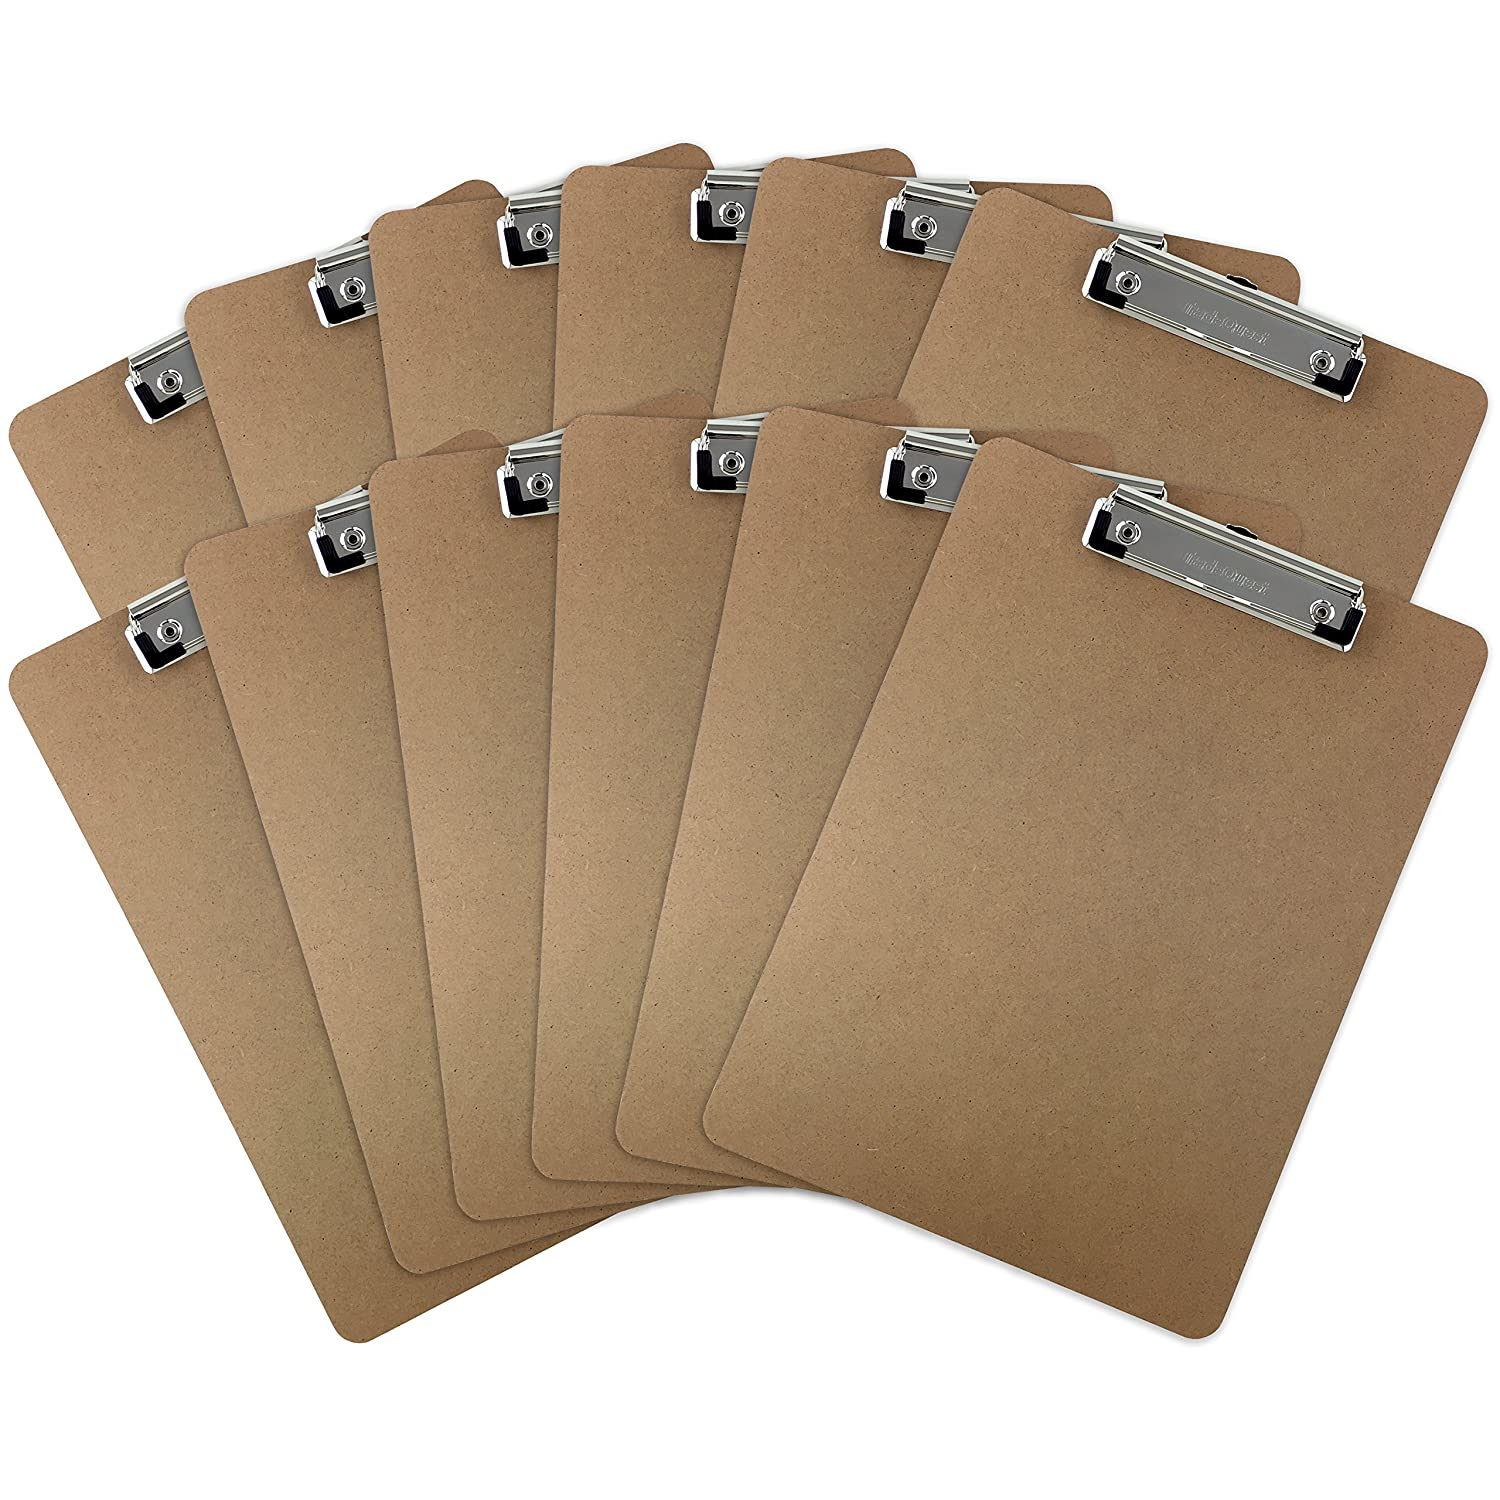 Trade Quest Letter Size Clipboard Low Profile Clip Hardboard (Pack of 12) Trade Quest Global Corp MLL12